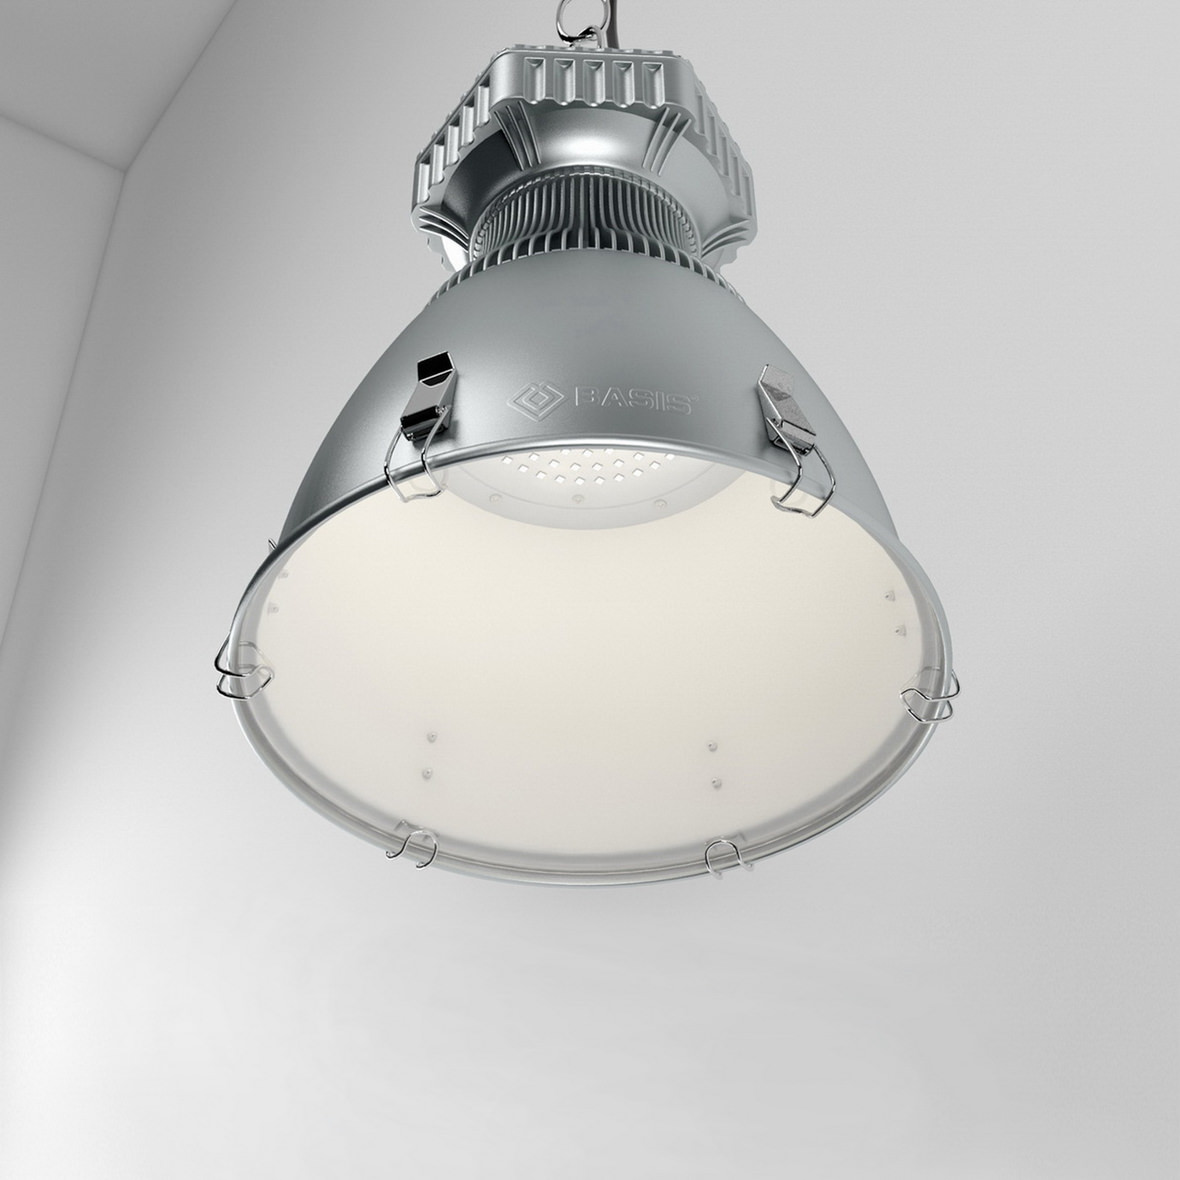 High quality product visualization of hanging industrial light fixture in metal case from the bottom